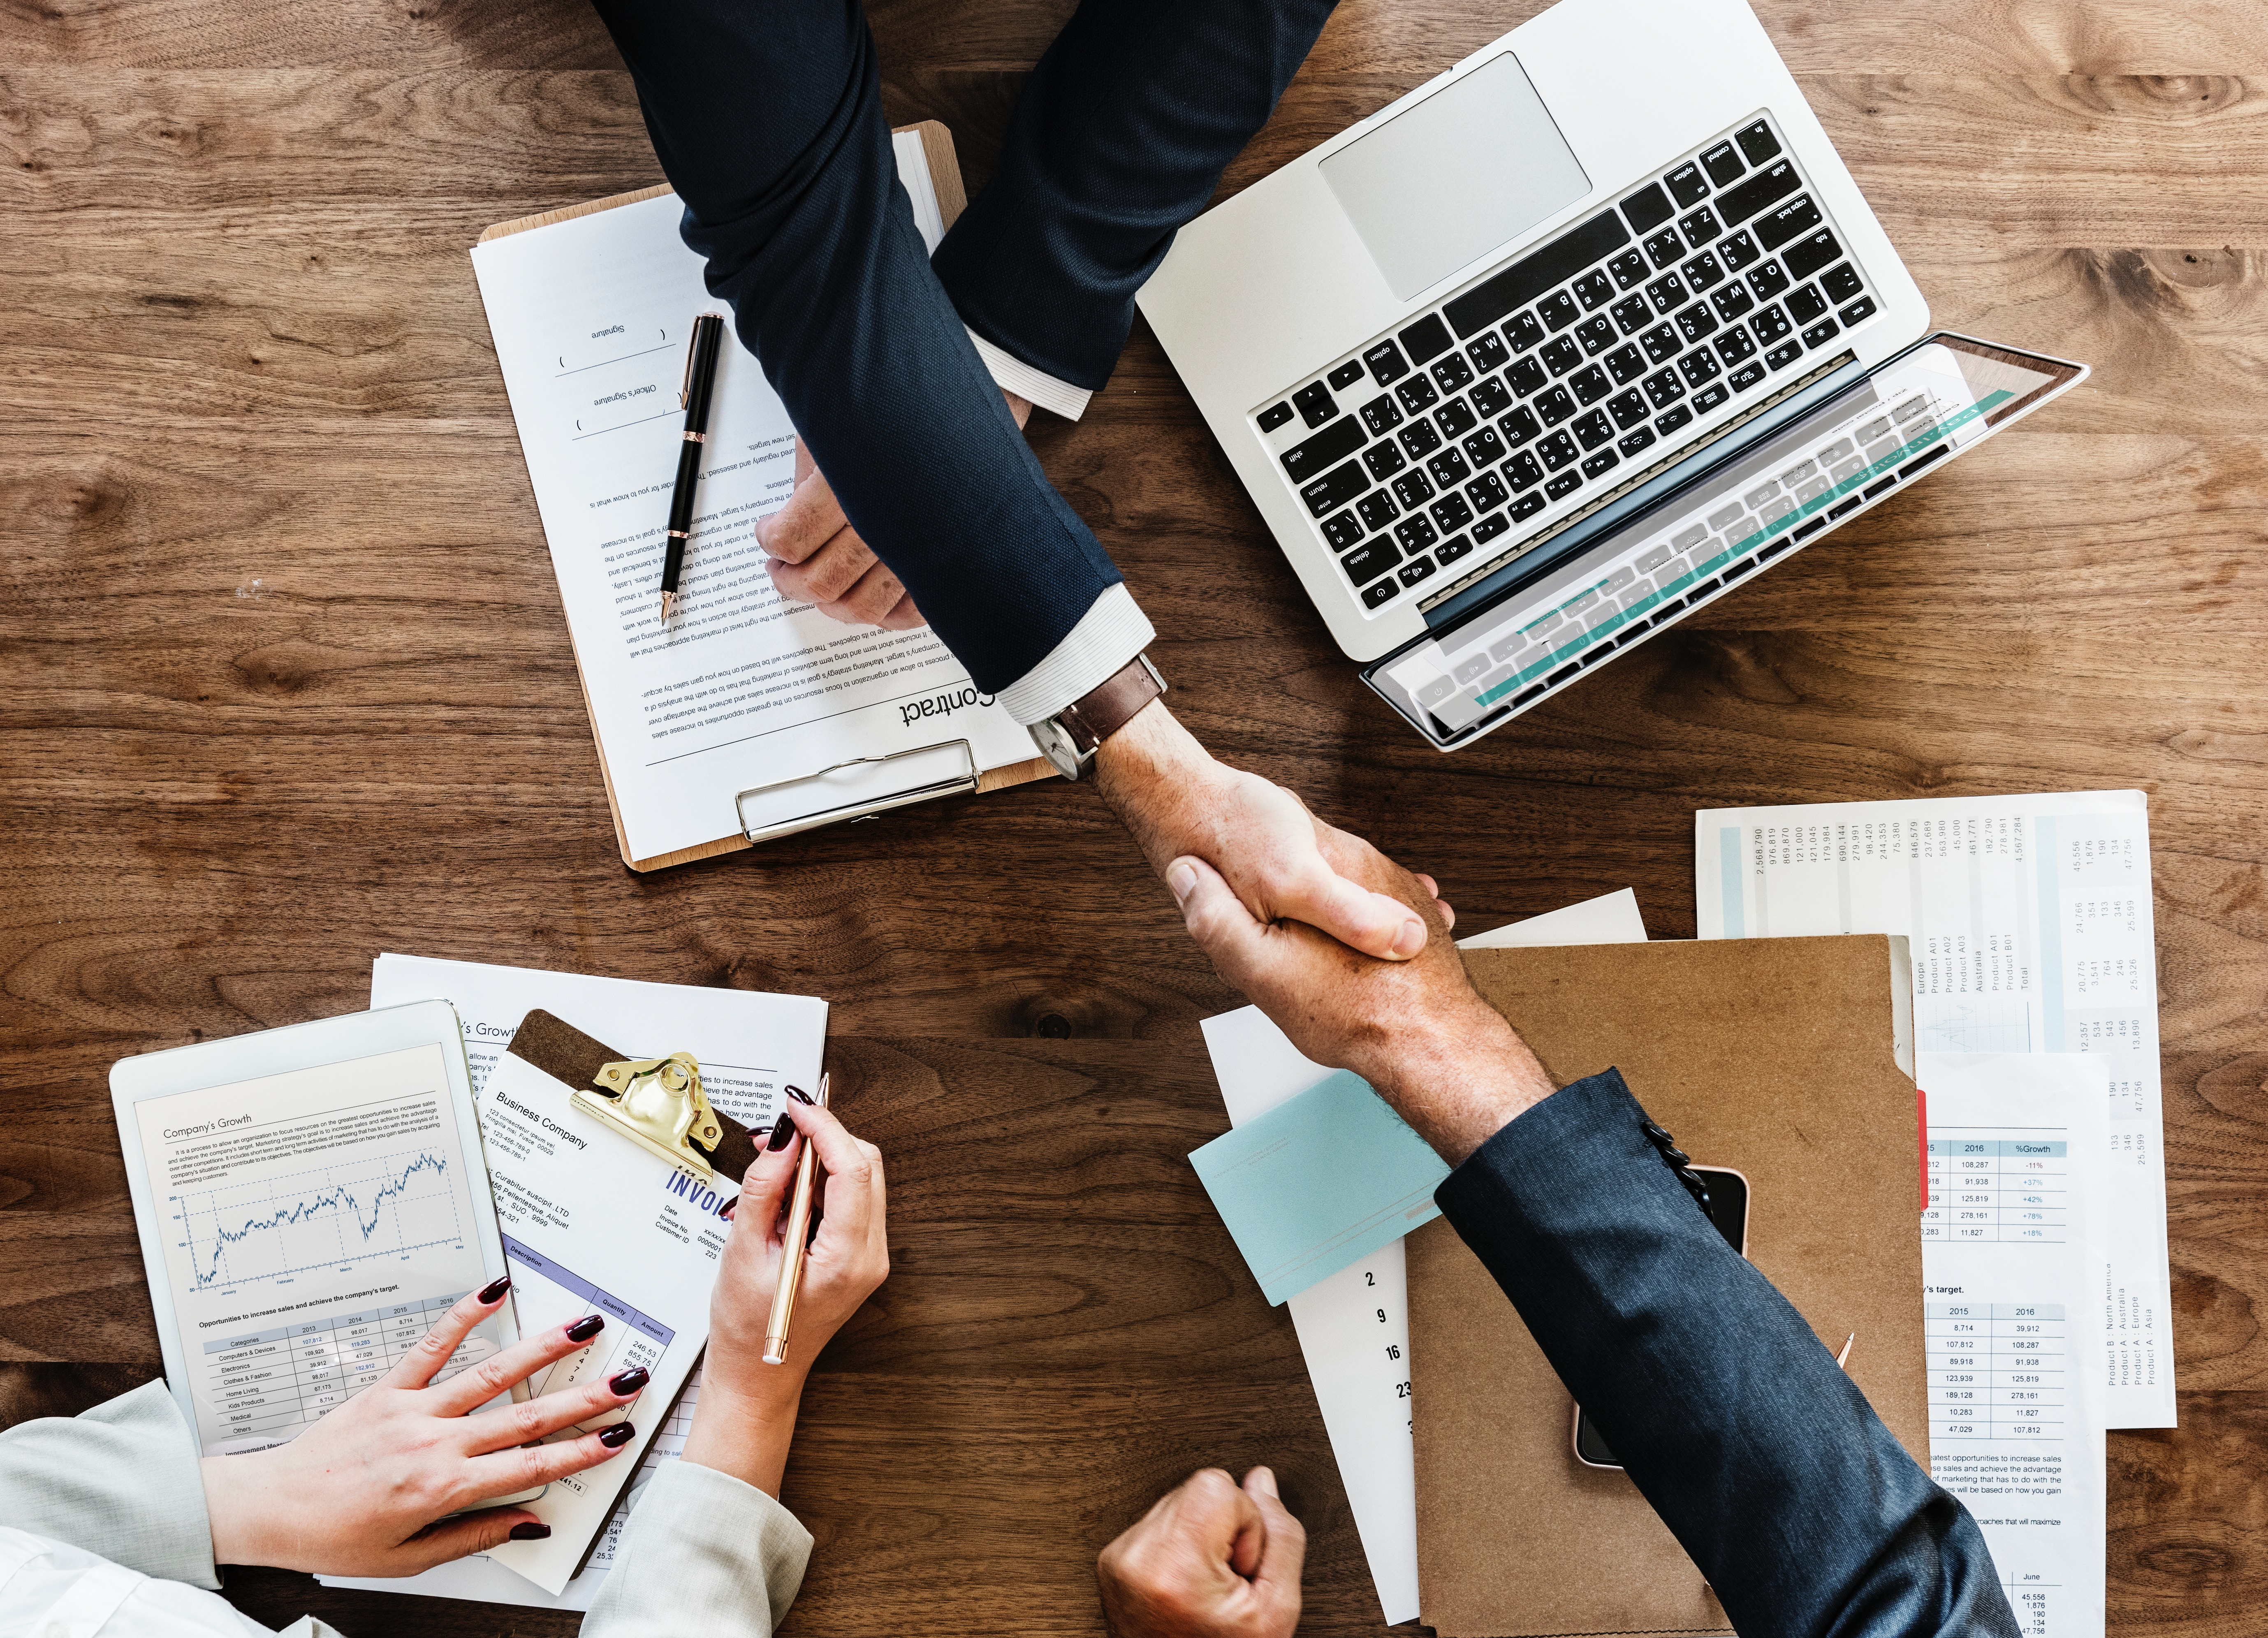 Business Plan and Businessmen shaking Hands